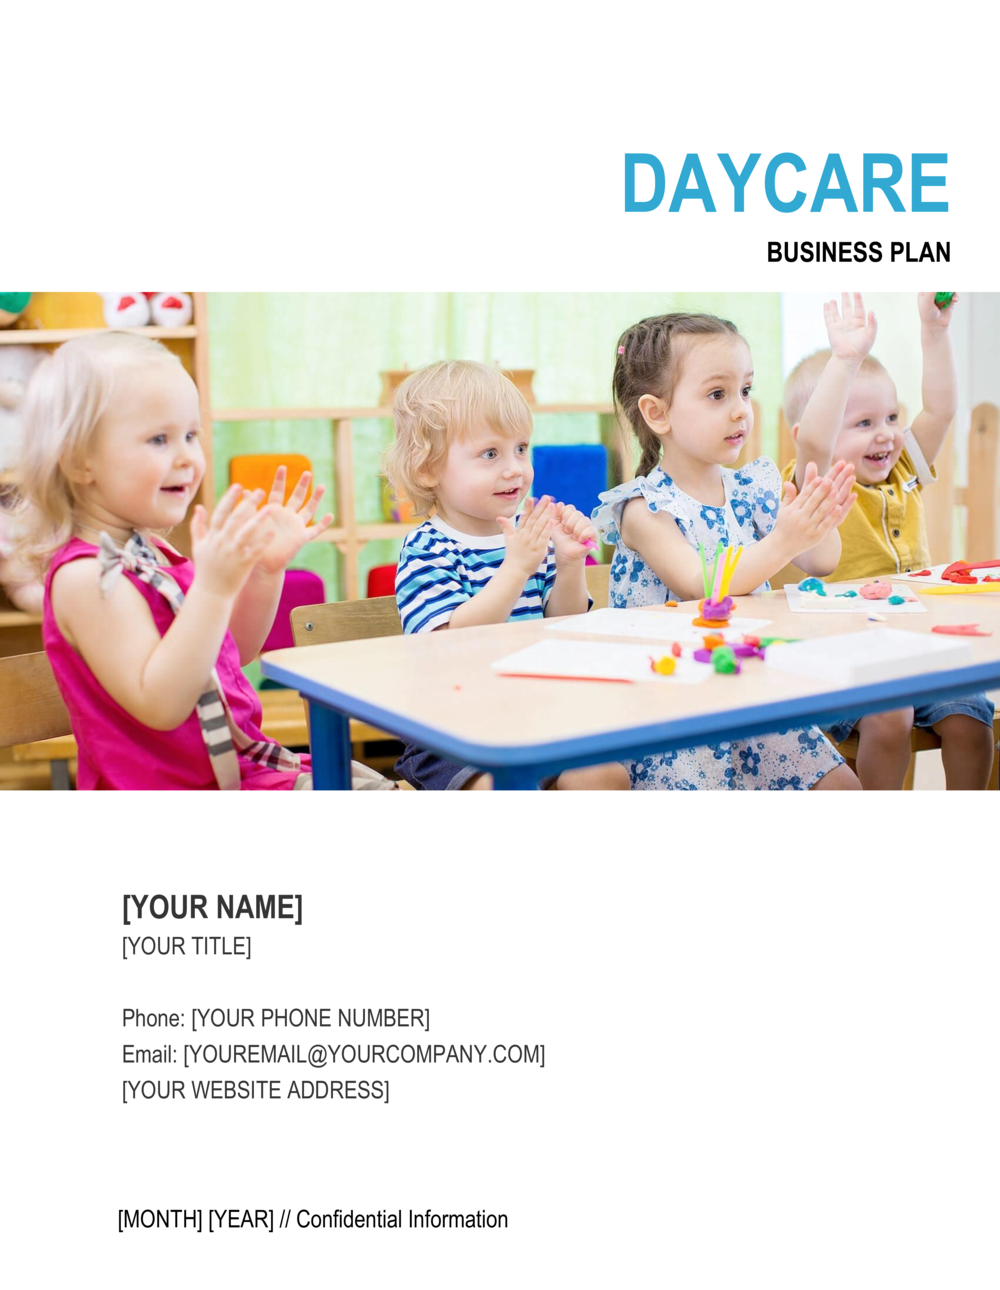 Business-in-a-Box's Daycare Business Plan 2 Template